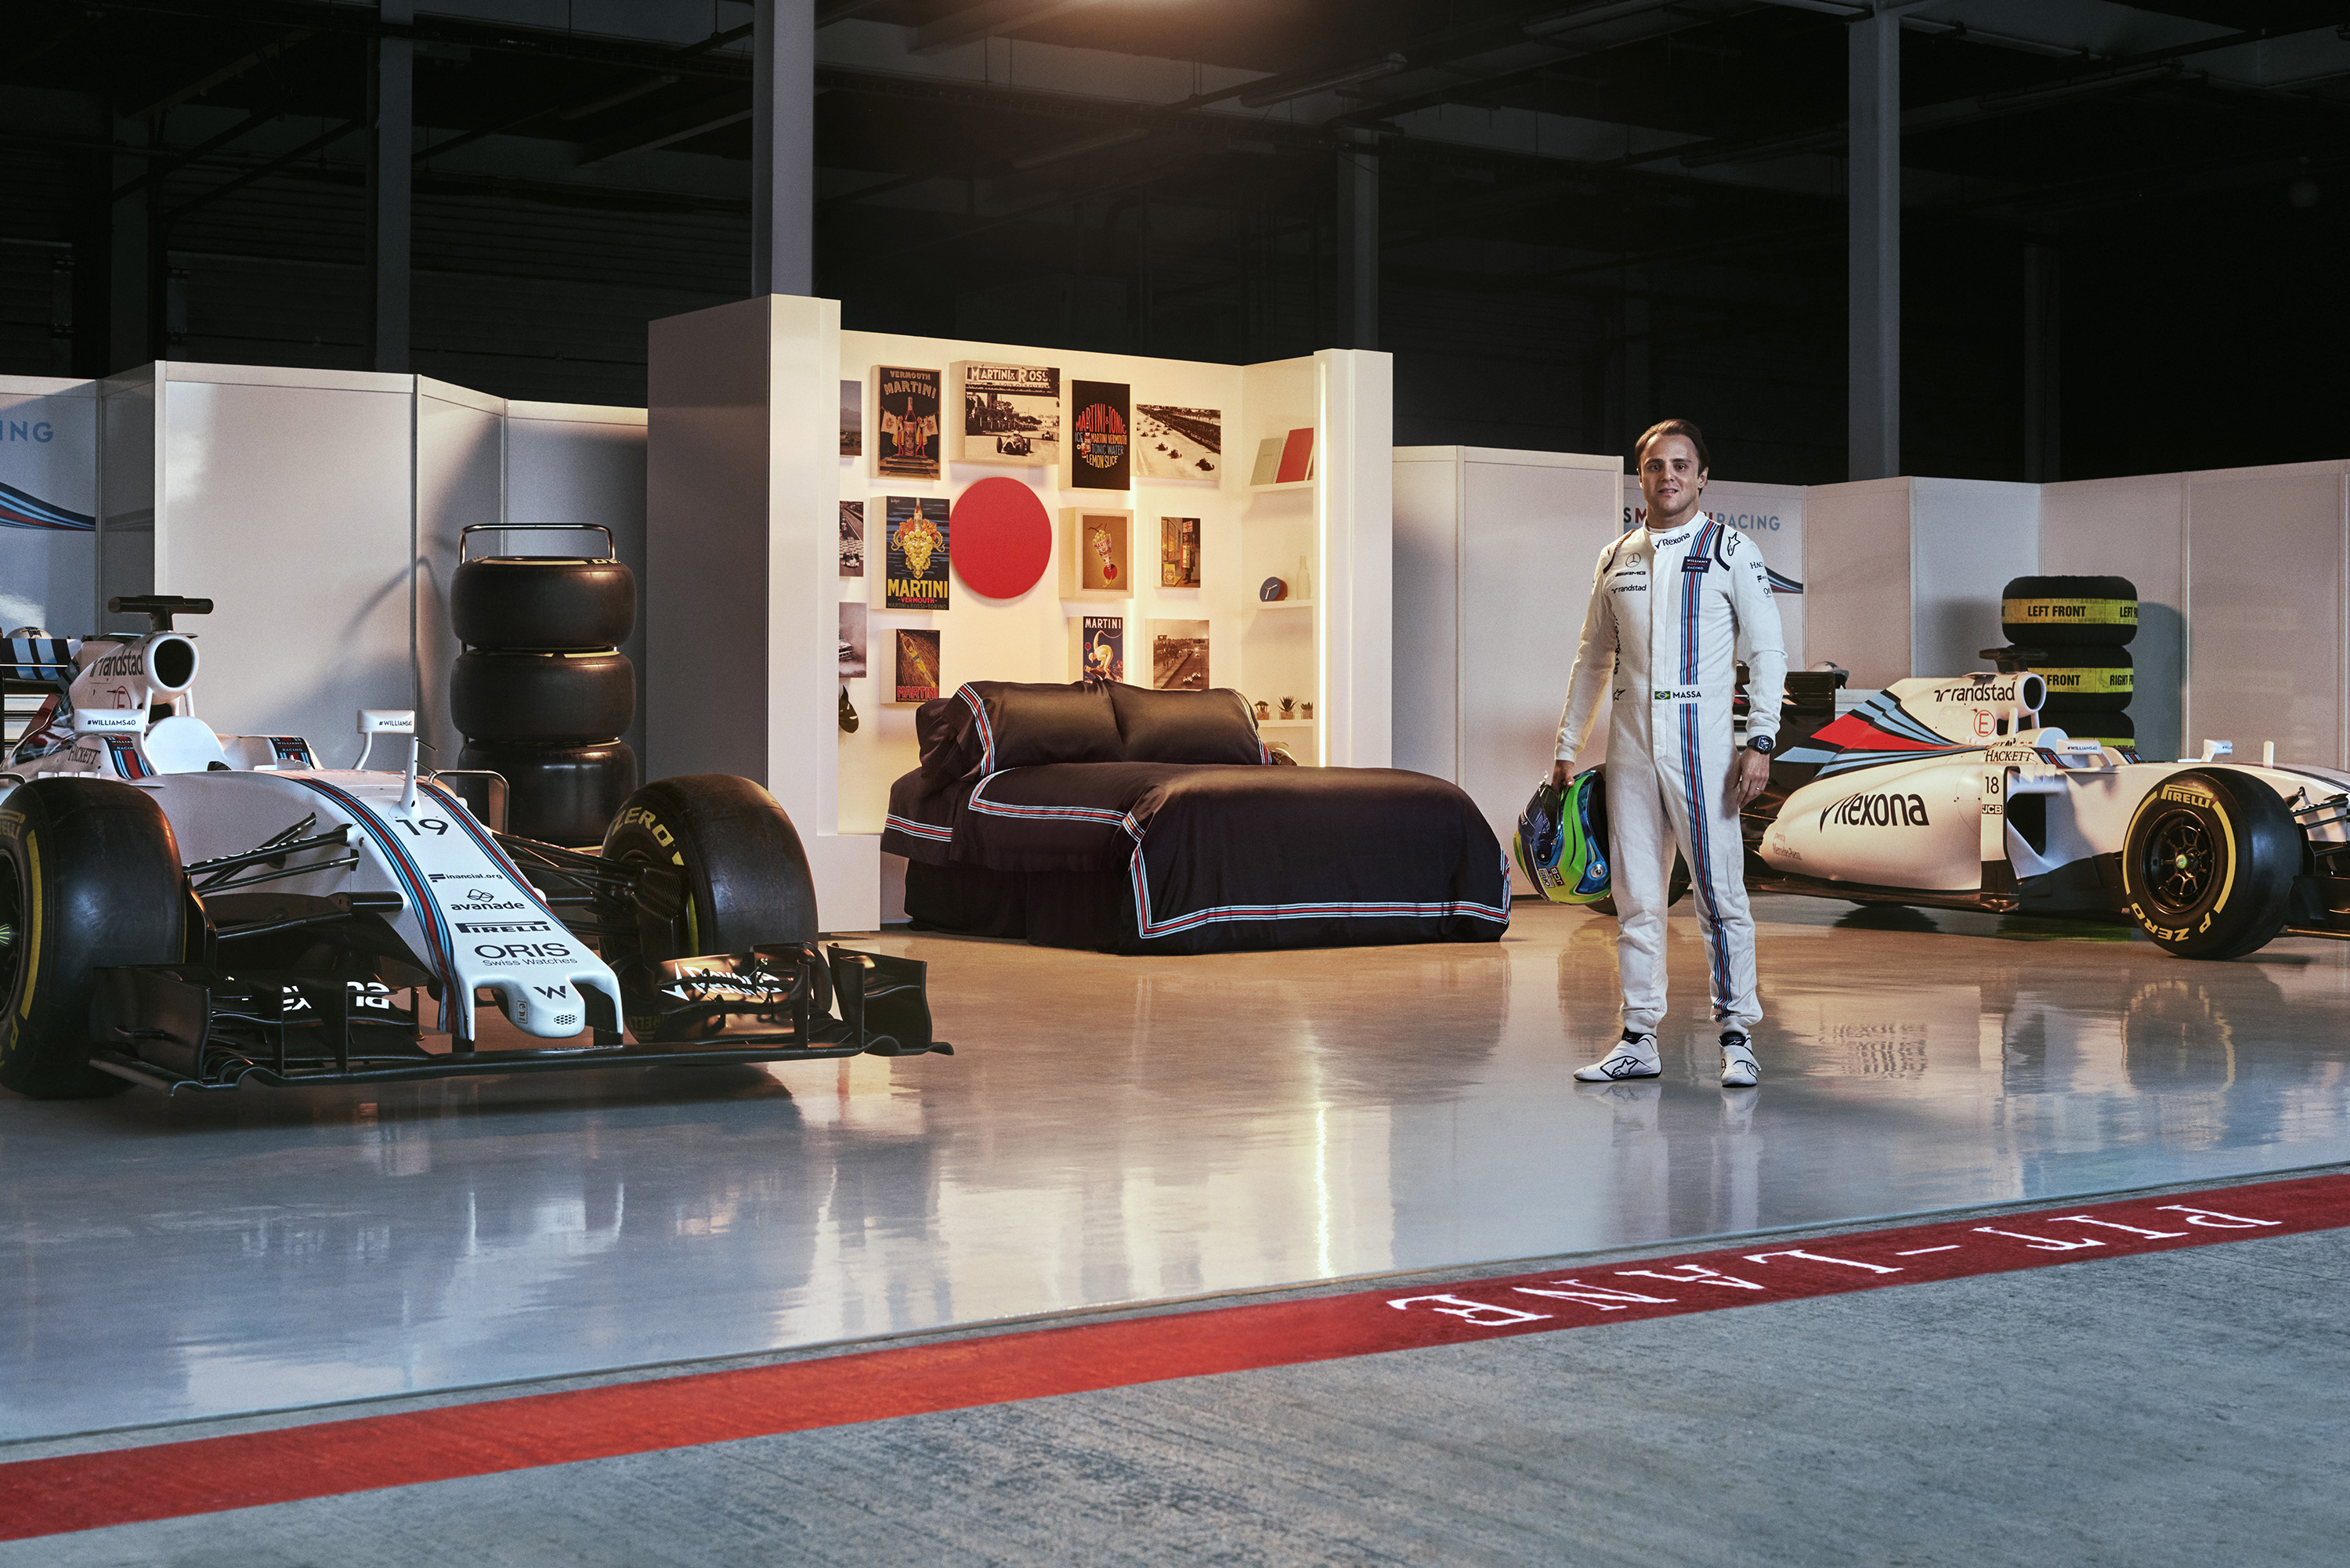 Love F1 cars? Here's how to spend the night at a Silverstone racing garage and meet Felipe Massa